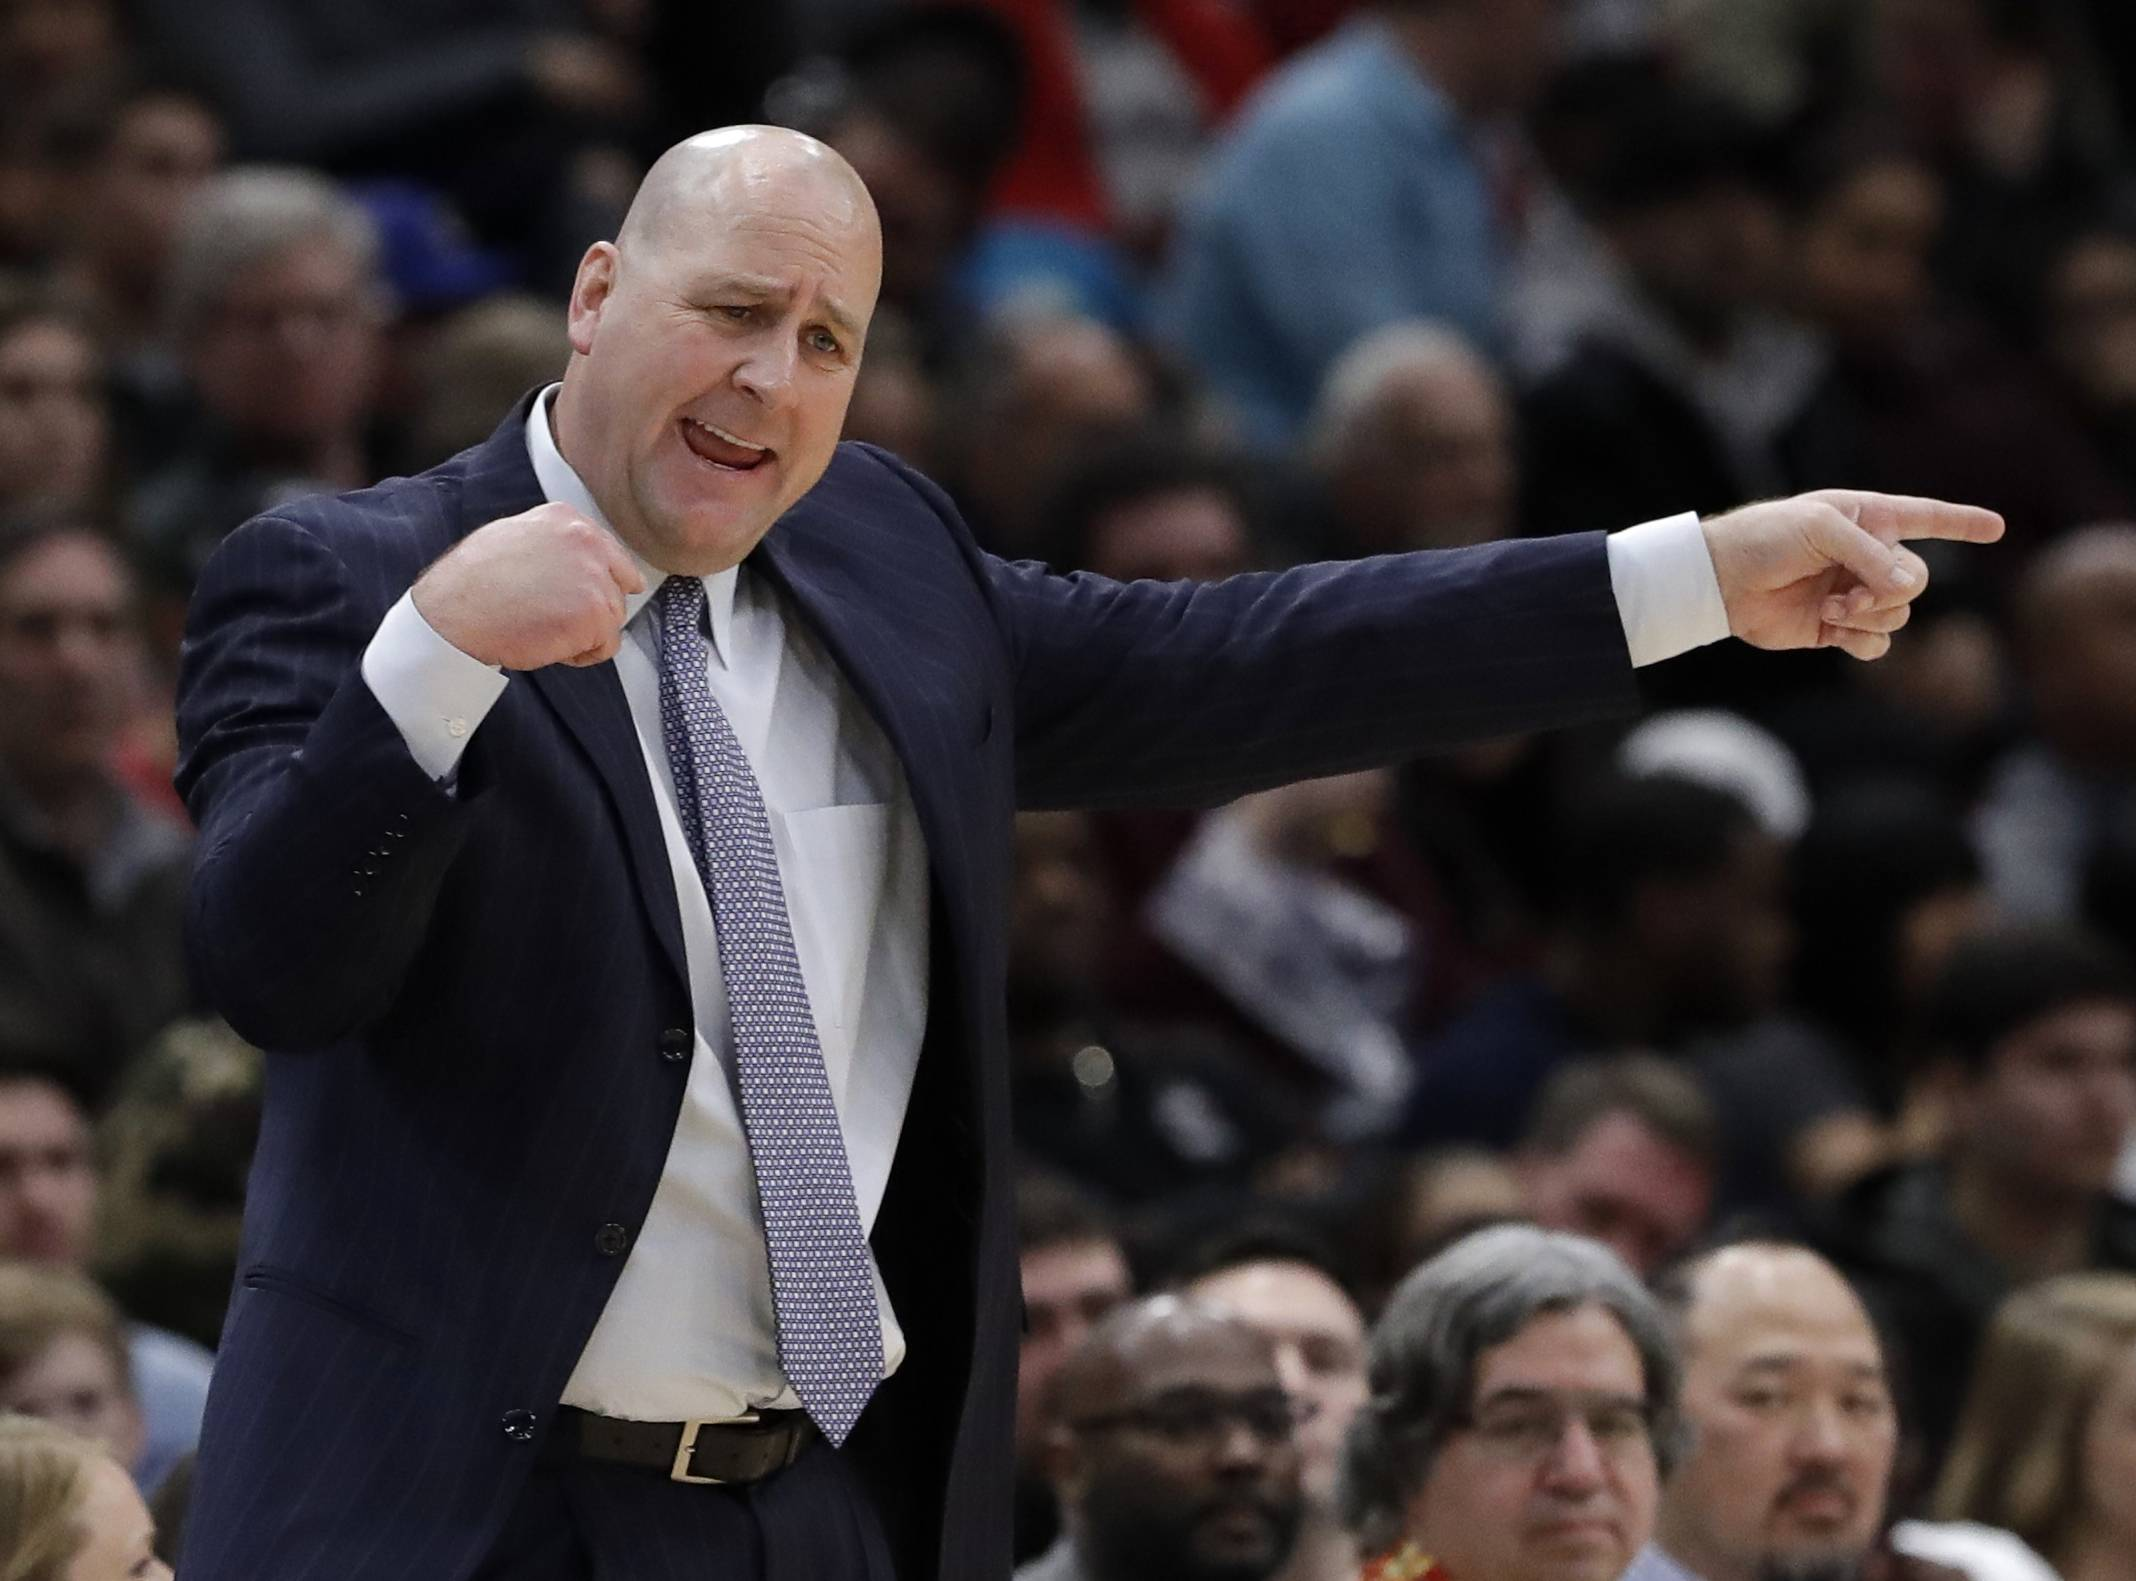 Chicago Bulls associate head coach Jim Boylen, who filed in for Fred Hoiberg on Sunday, says Zach LaVine's defense will get better with a full training camp next season.